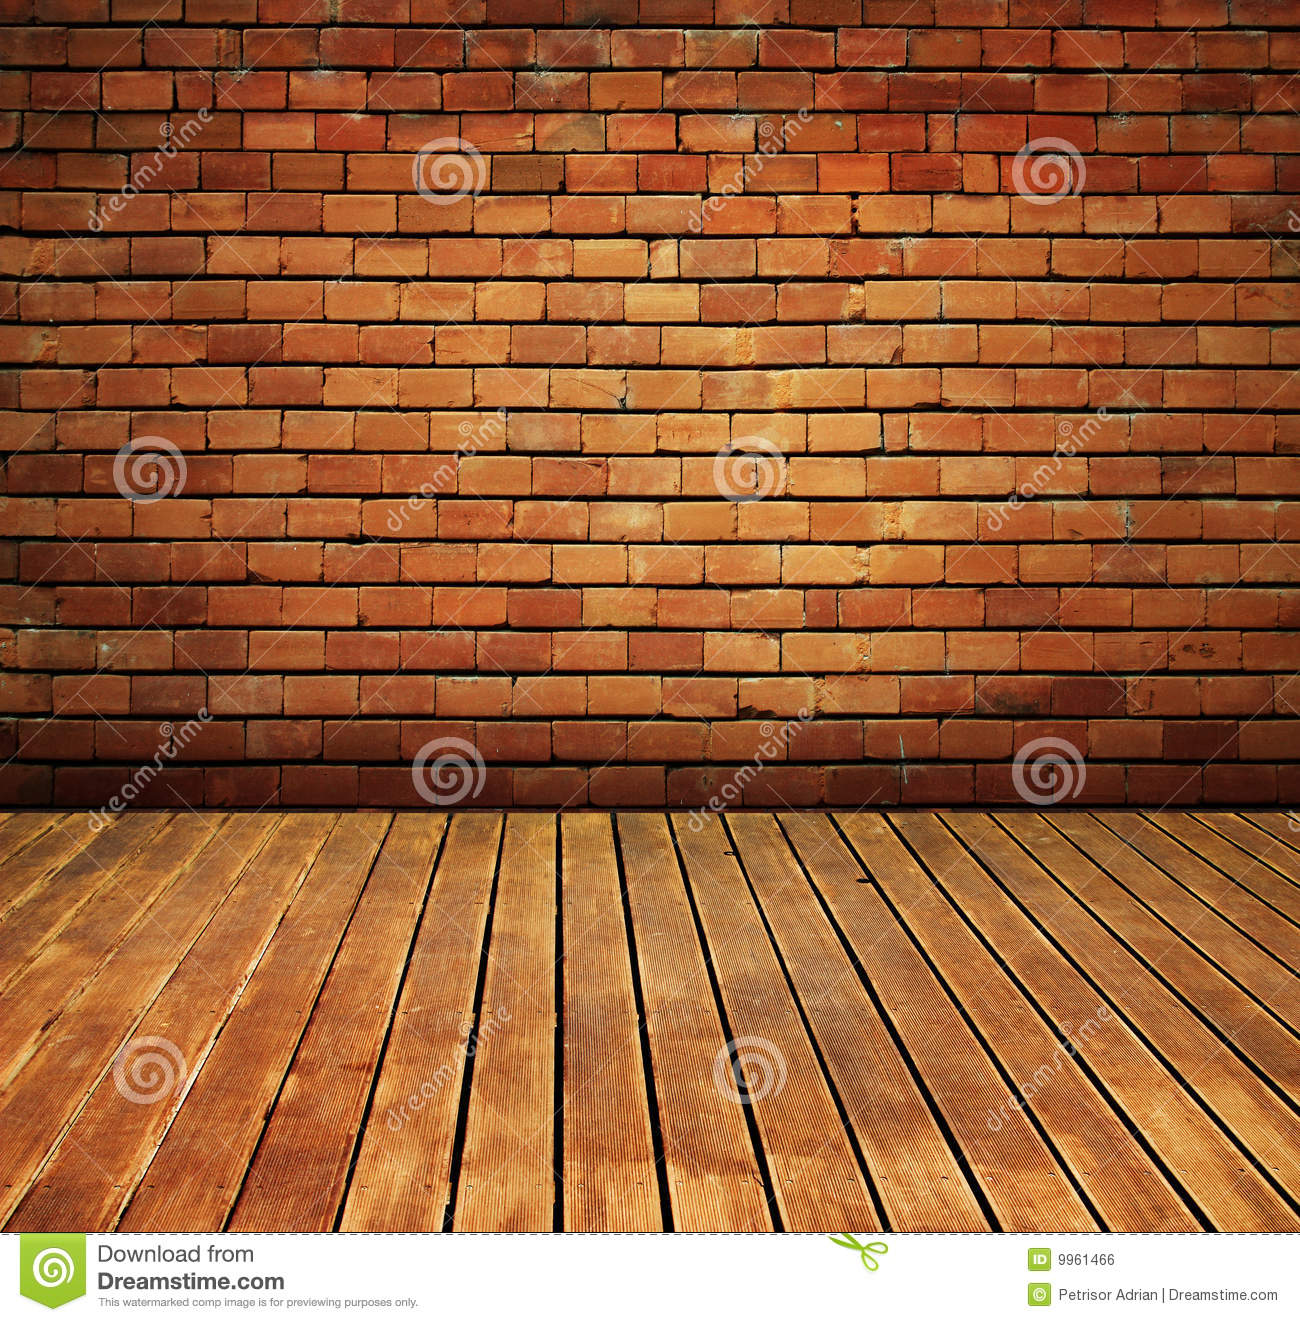 Vintage brick wall and wood floor texture interior stock for Brique de parement interieur